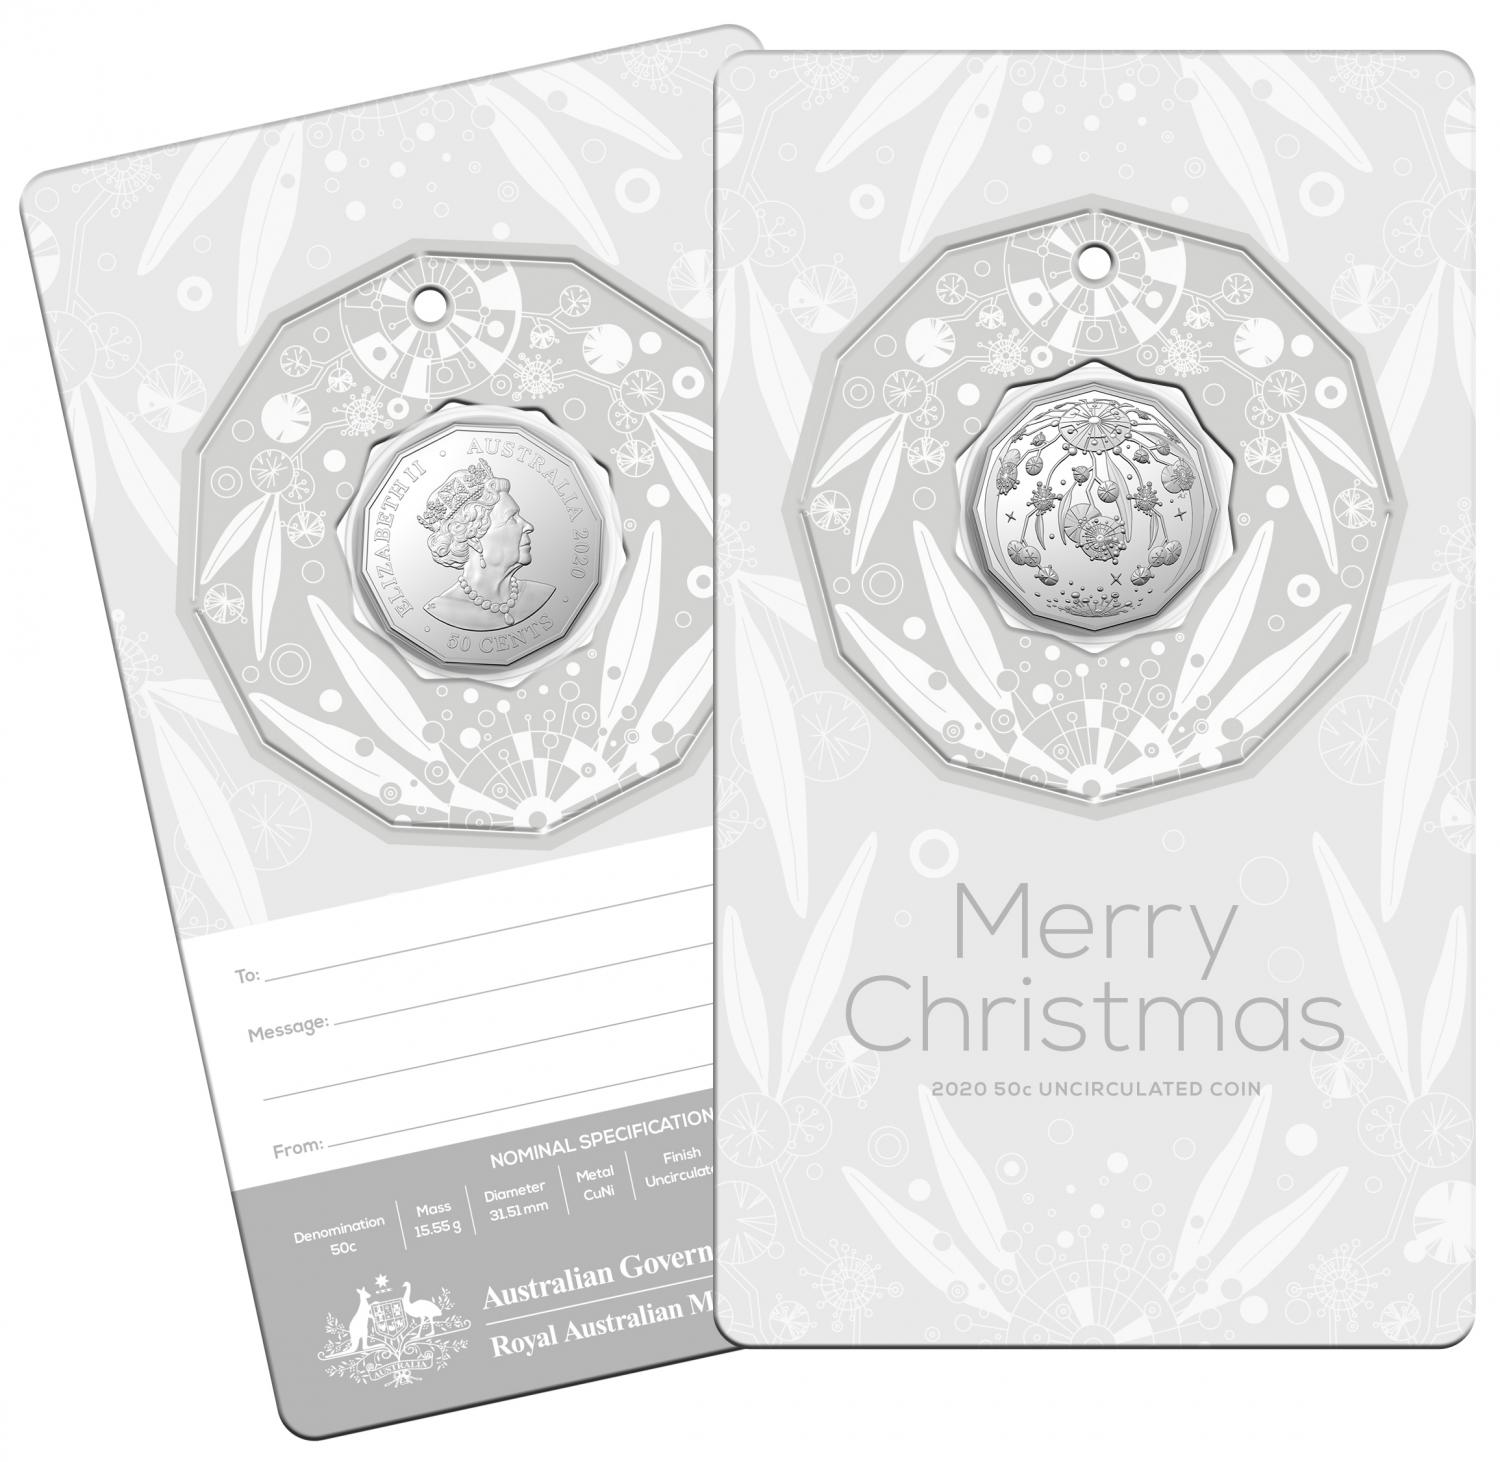 Thumbnail for 2020 Christmas .50c UNC Coin - Silver Card Decoration